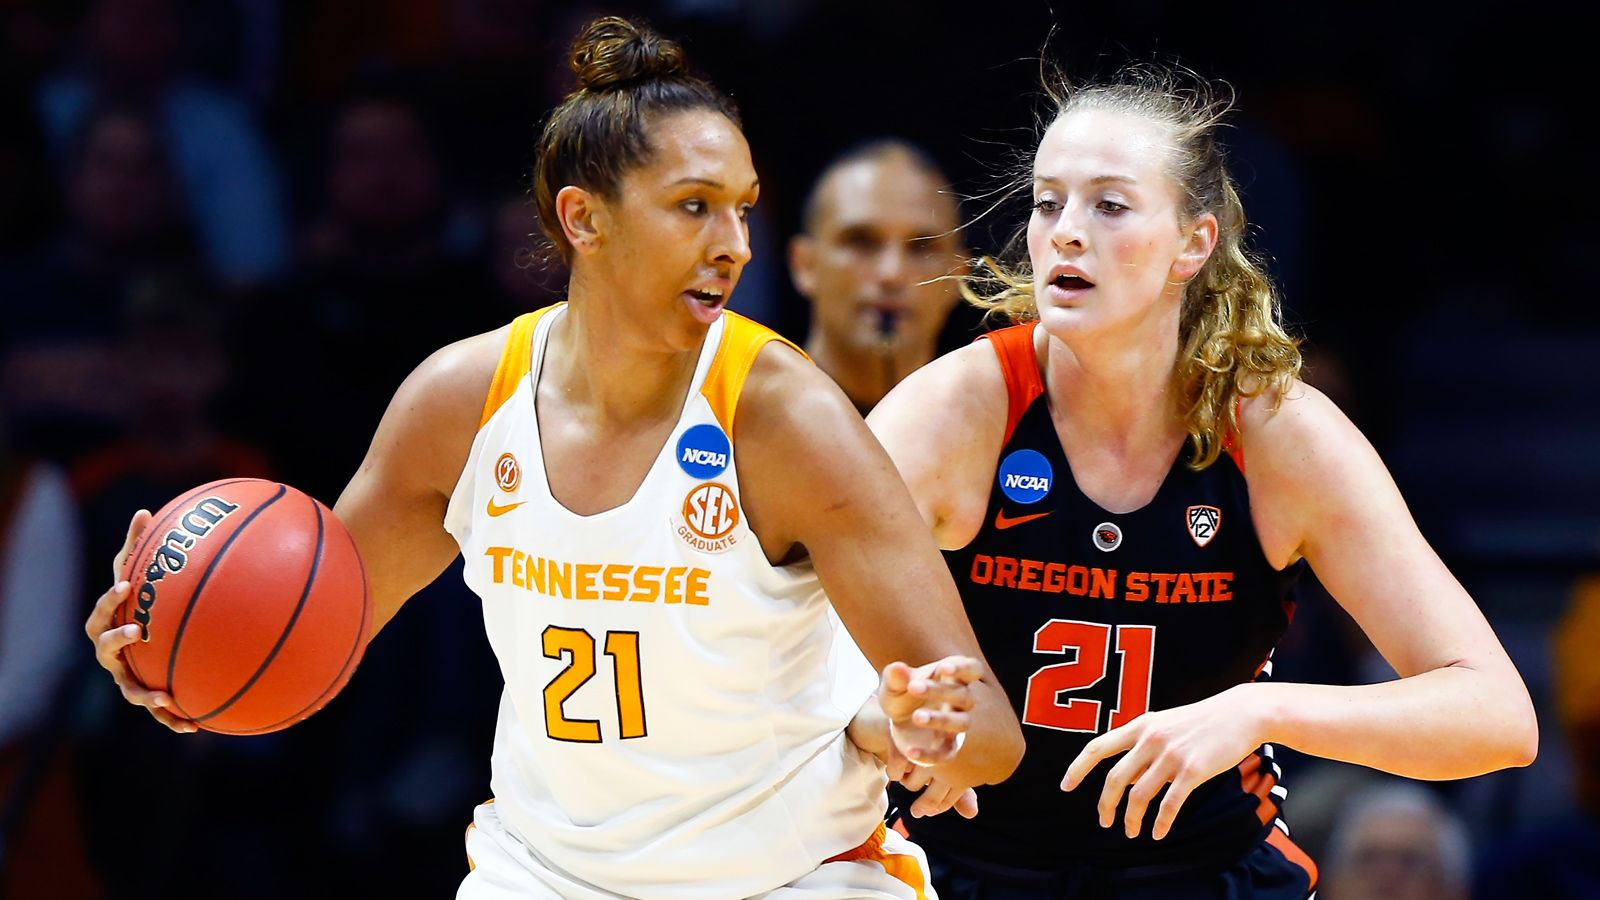 Tennessee falls to Oregon State 66-59 to finish season